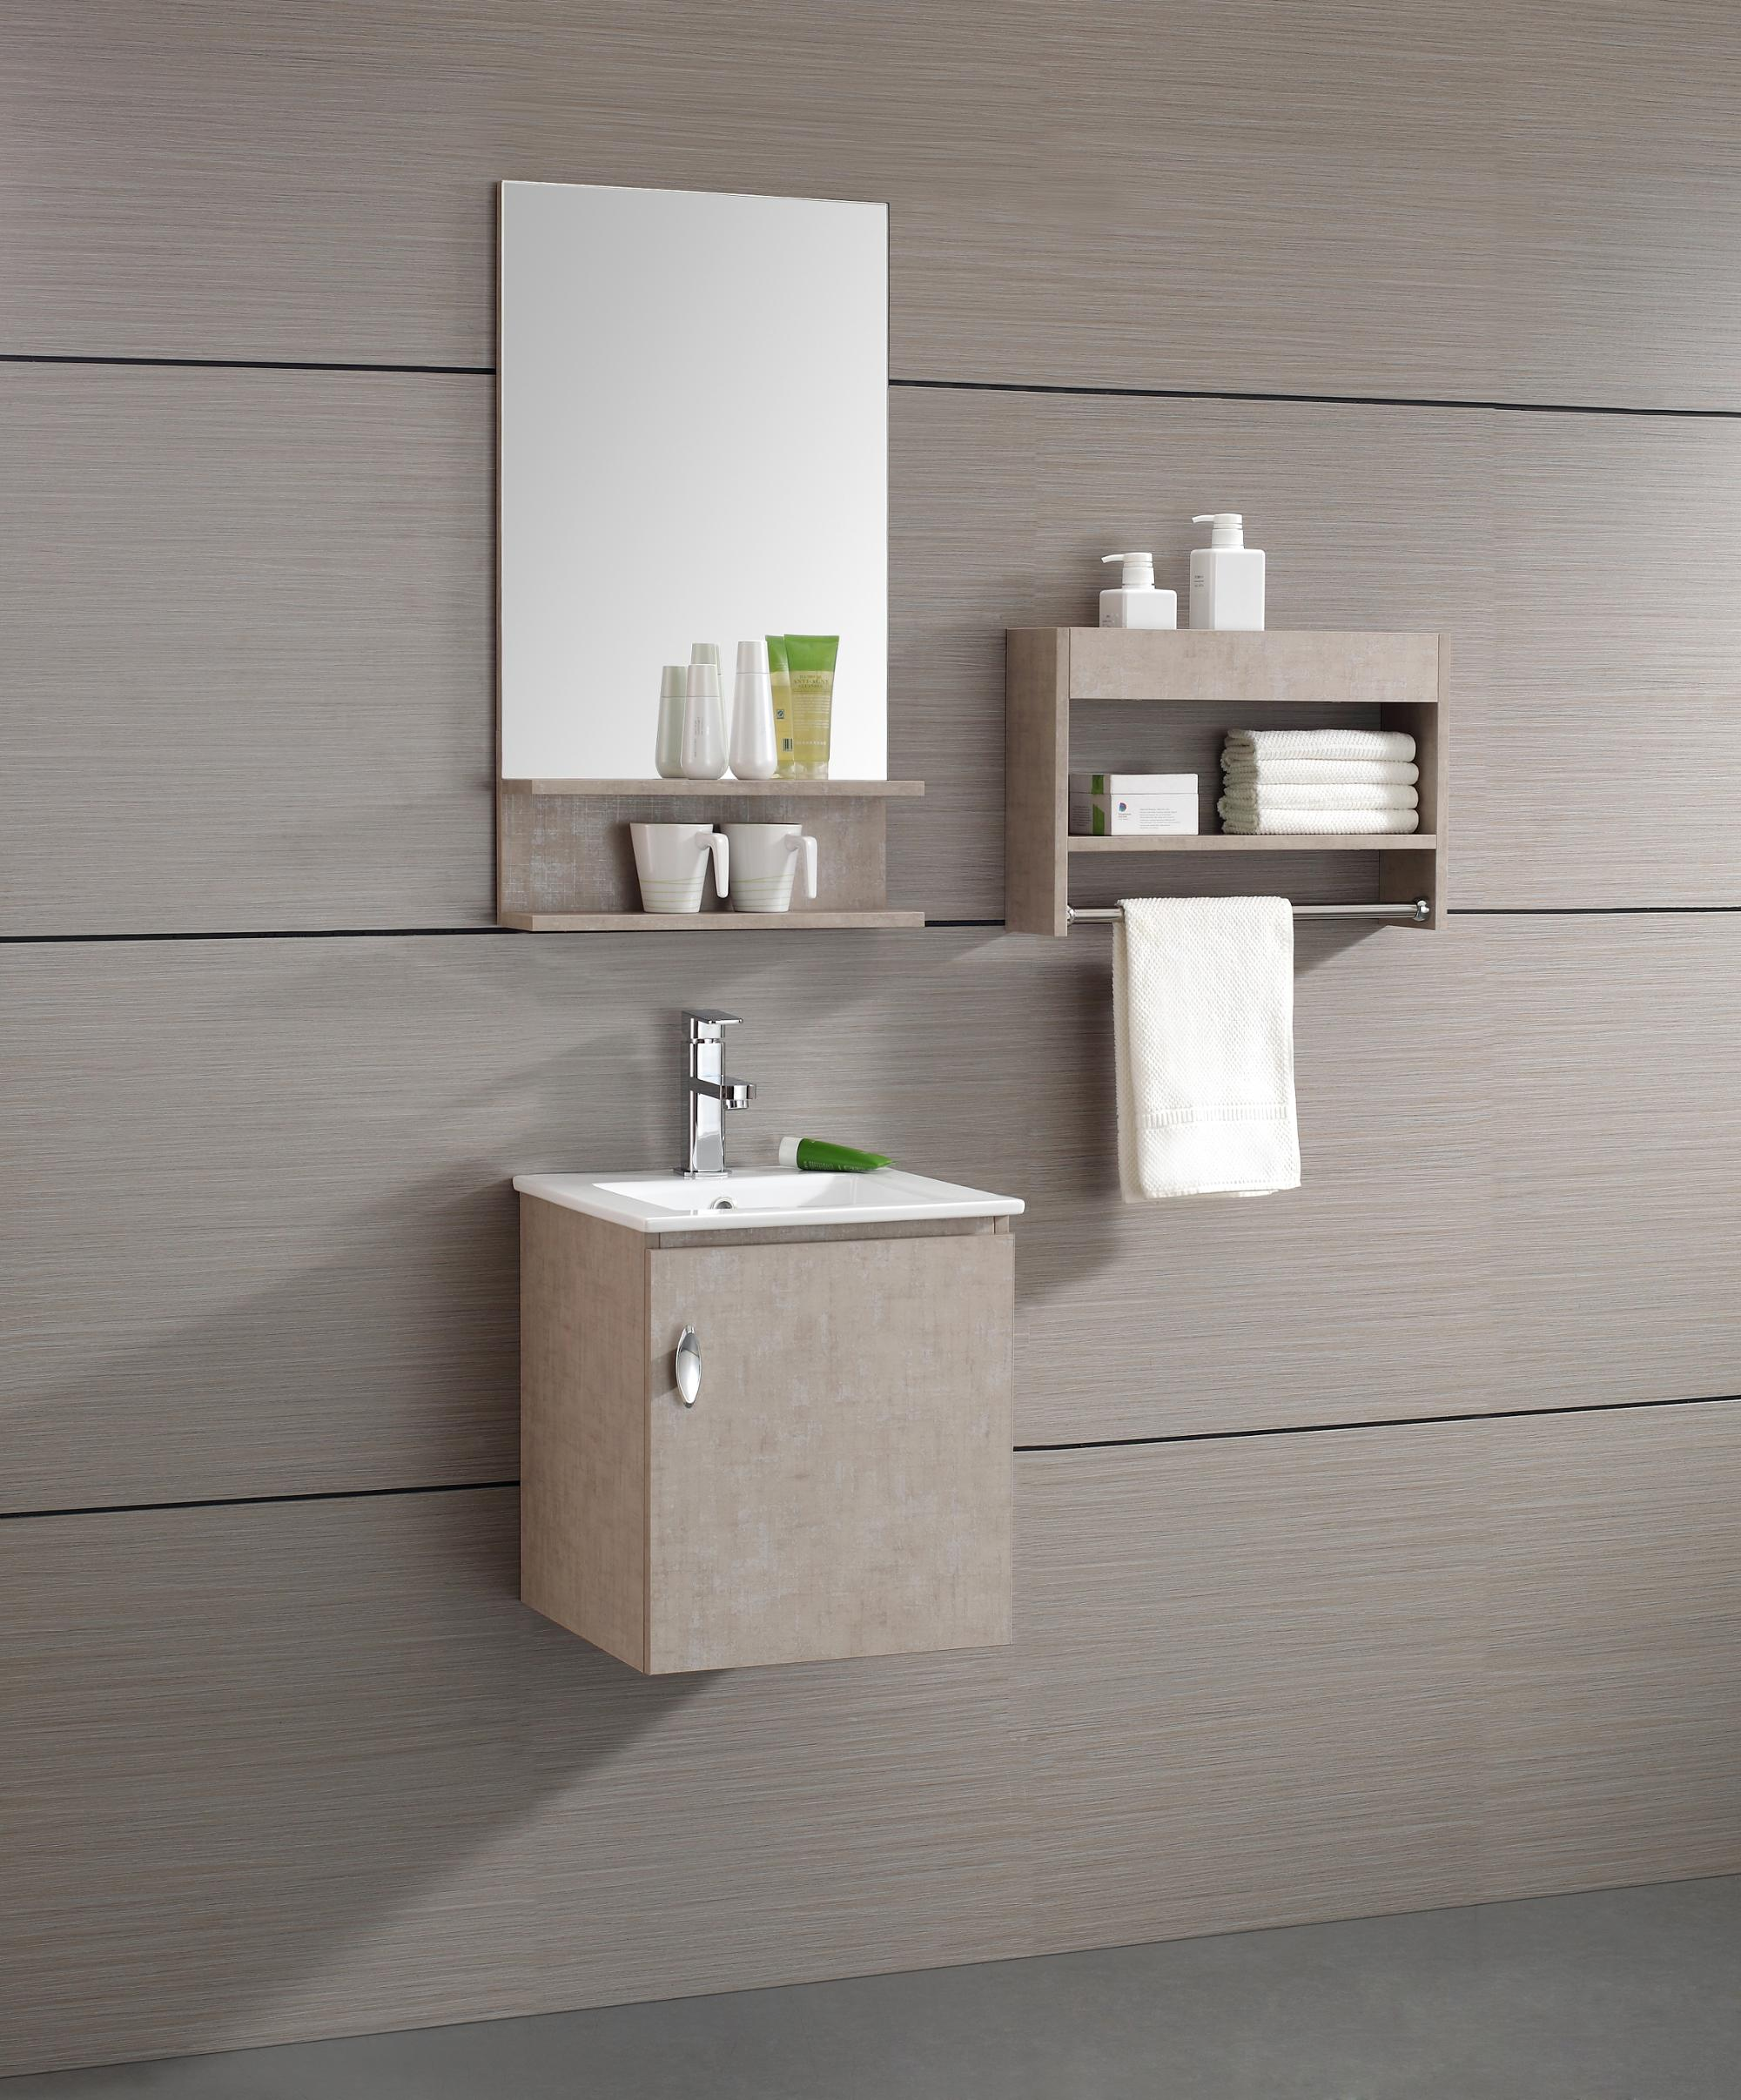 natural charm wood texture commercial bathroom vanities with two color options